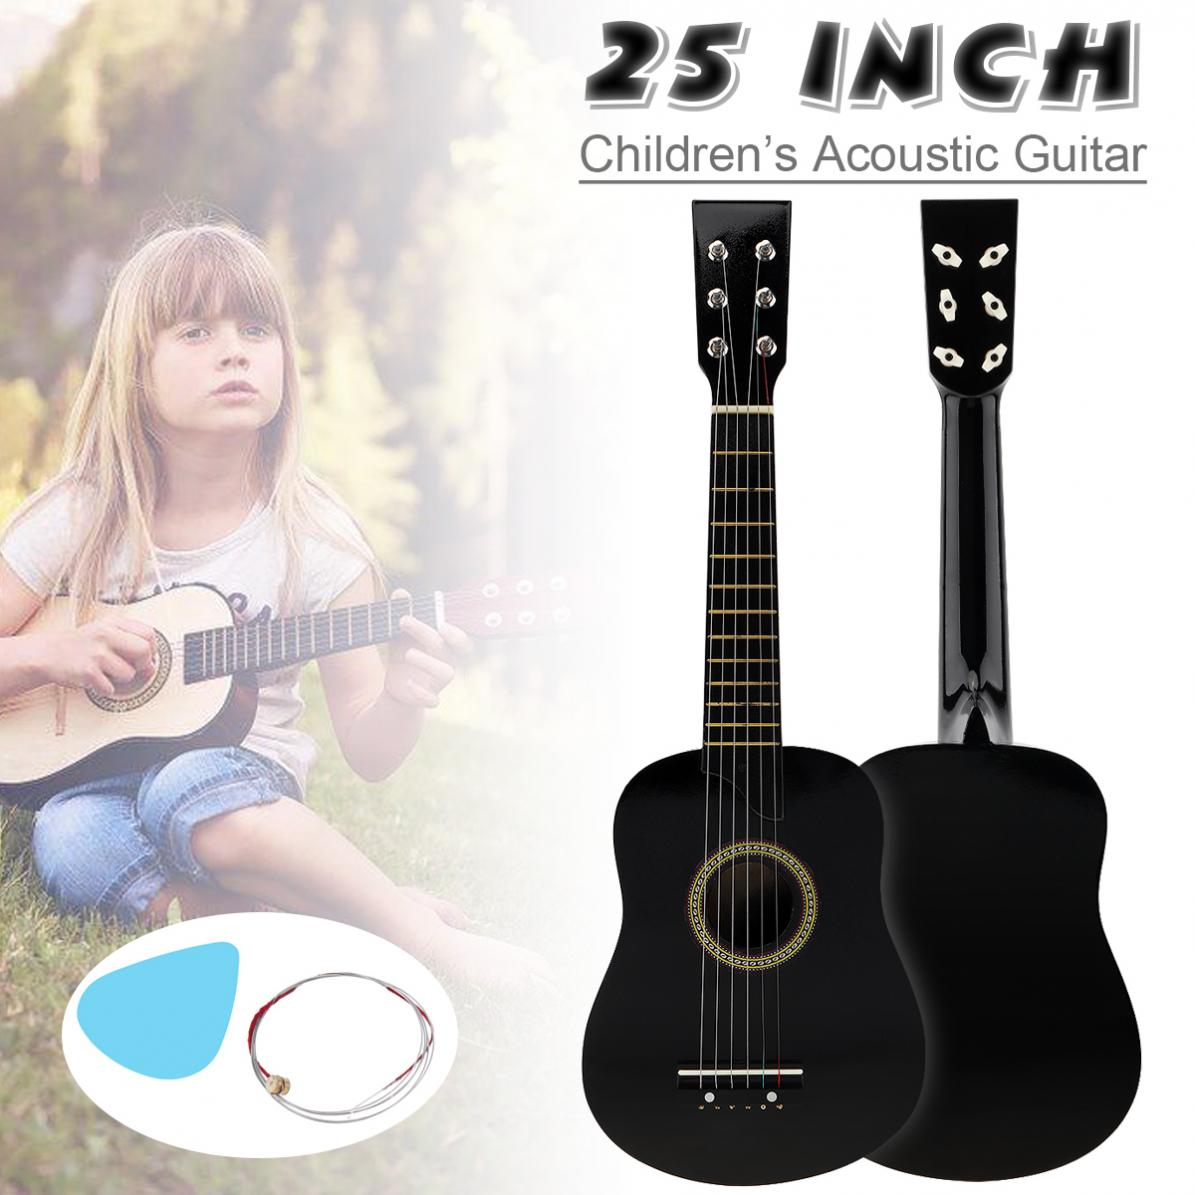 25 Inch Basswood Acoustic Guitar with Pick Strings Toy Guitar for Children and Beginner Send gifts Musical Stringed Instrument enlarge